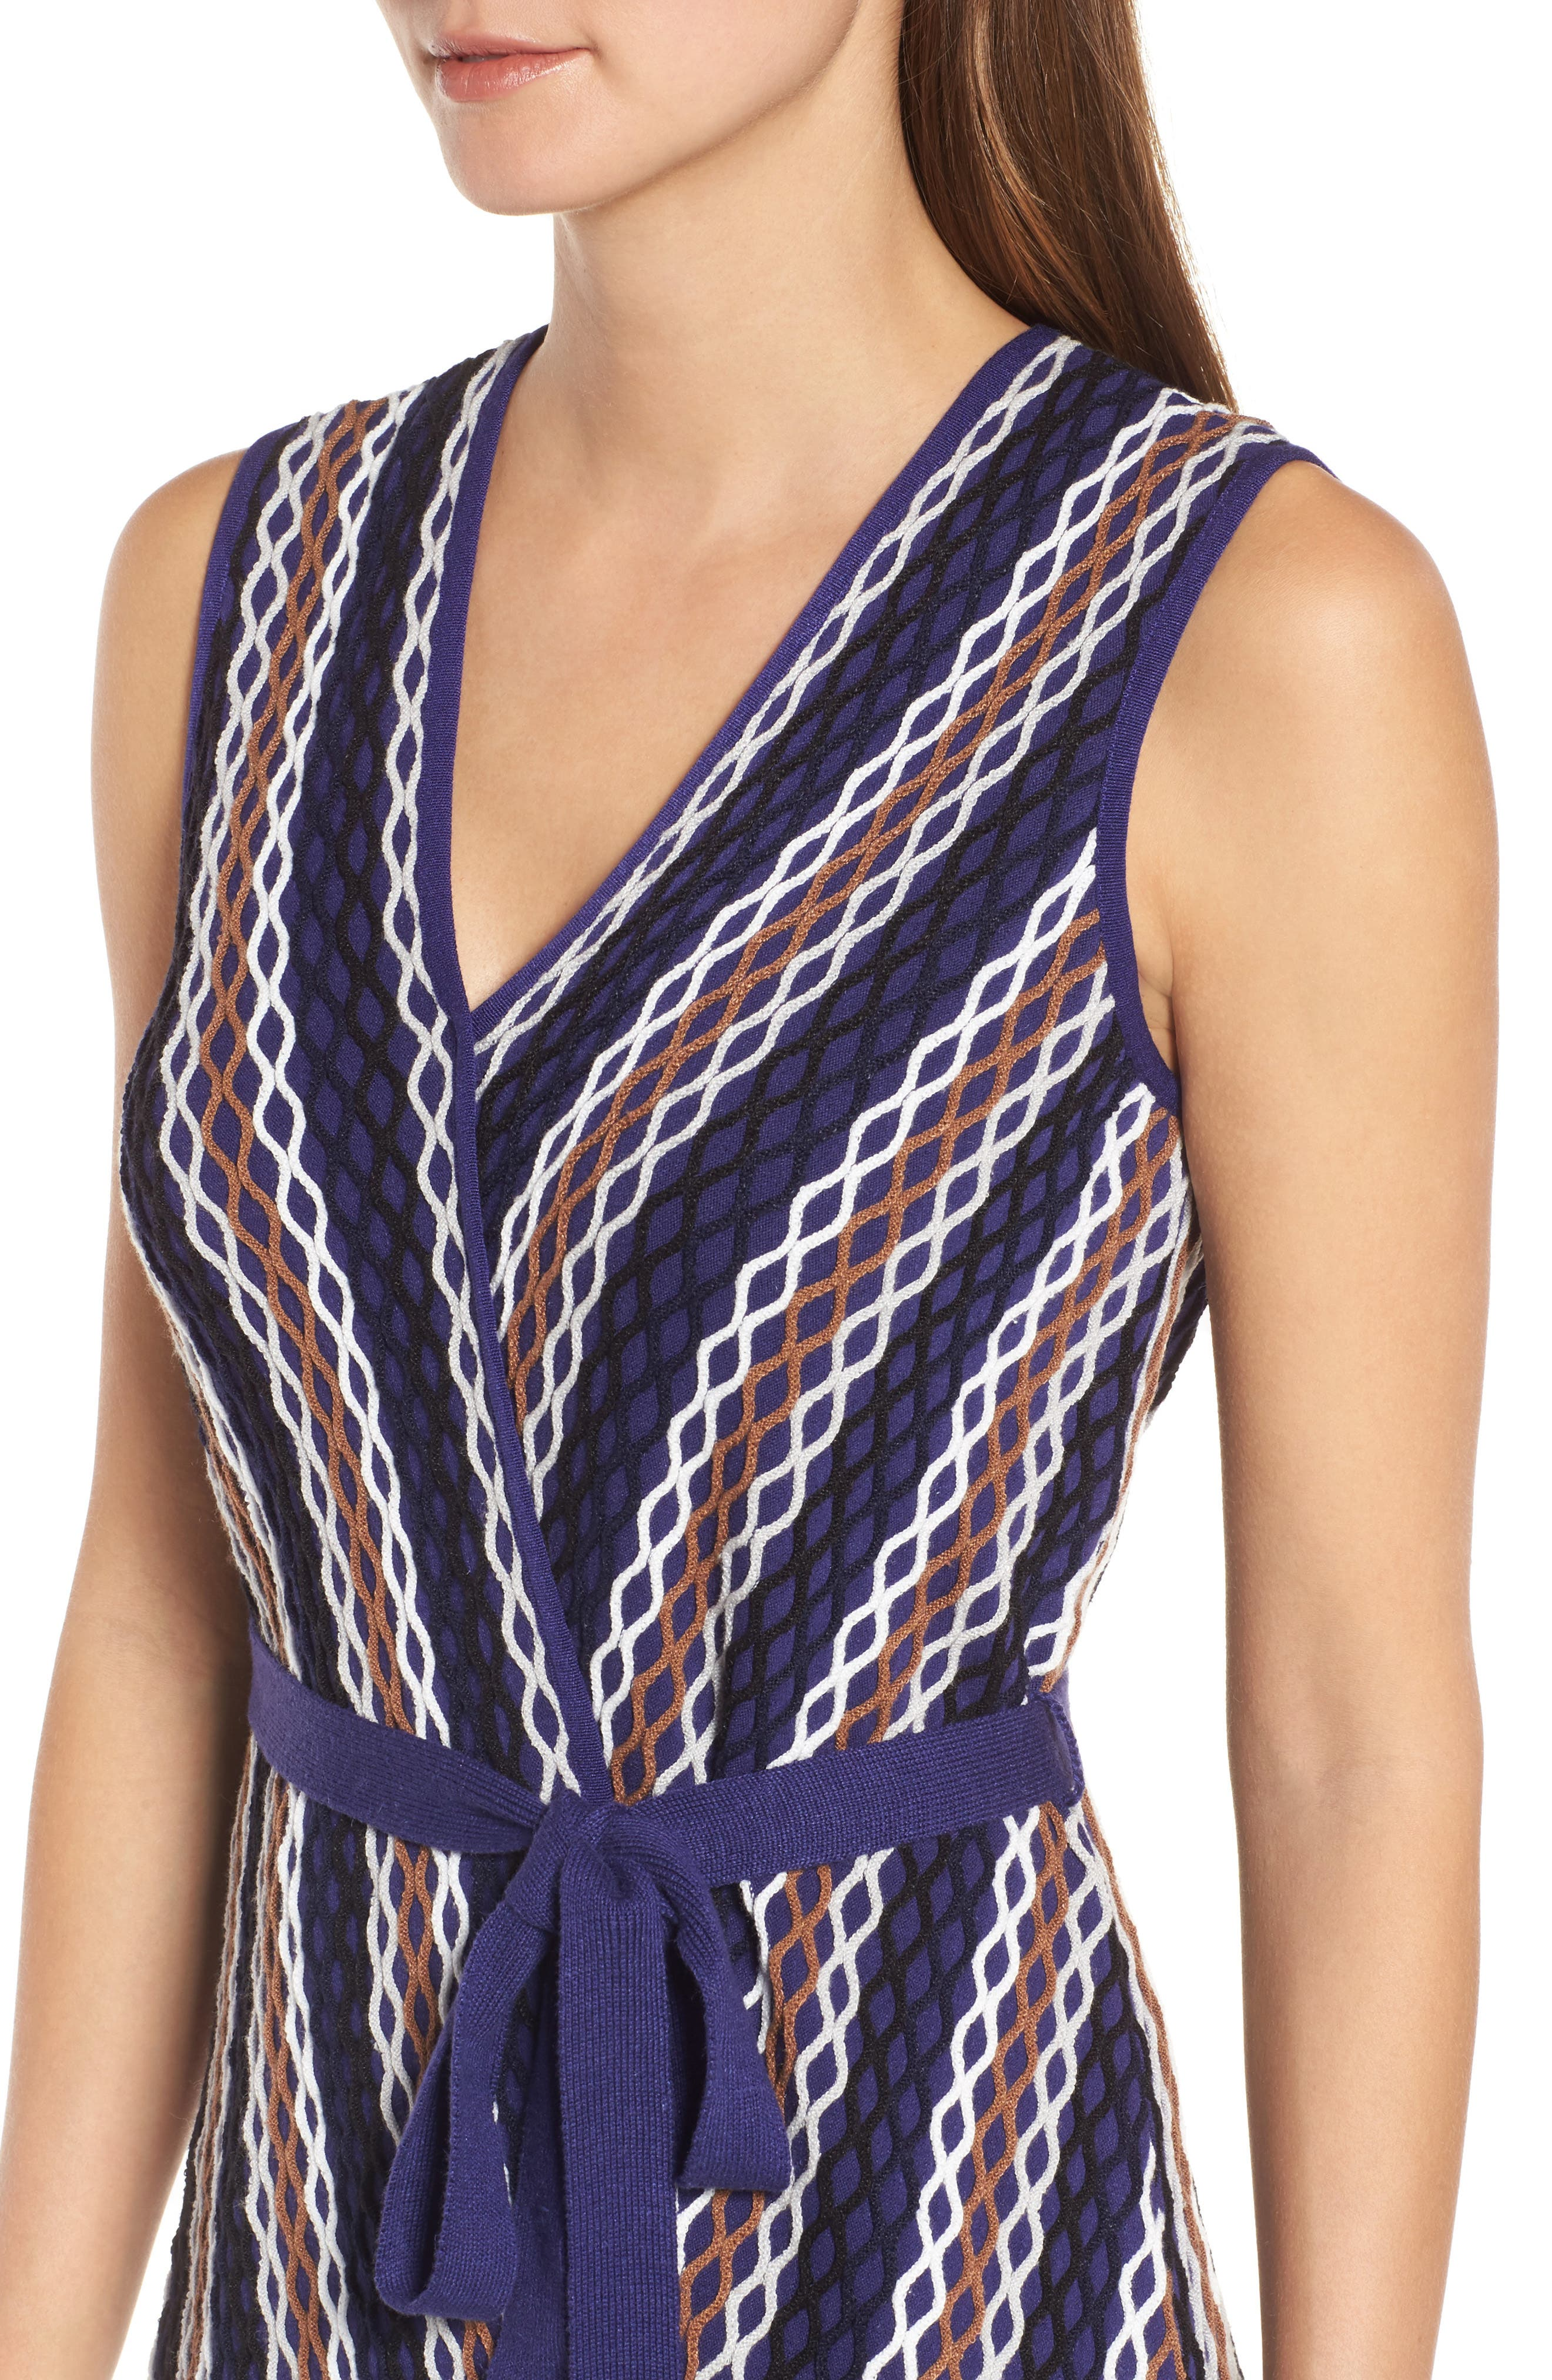 Squiggled Up Faux Wrap Dress,                             Alternate thumbnail 4, color,                             490